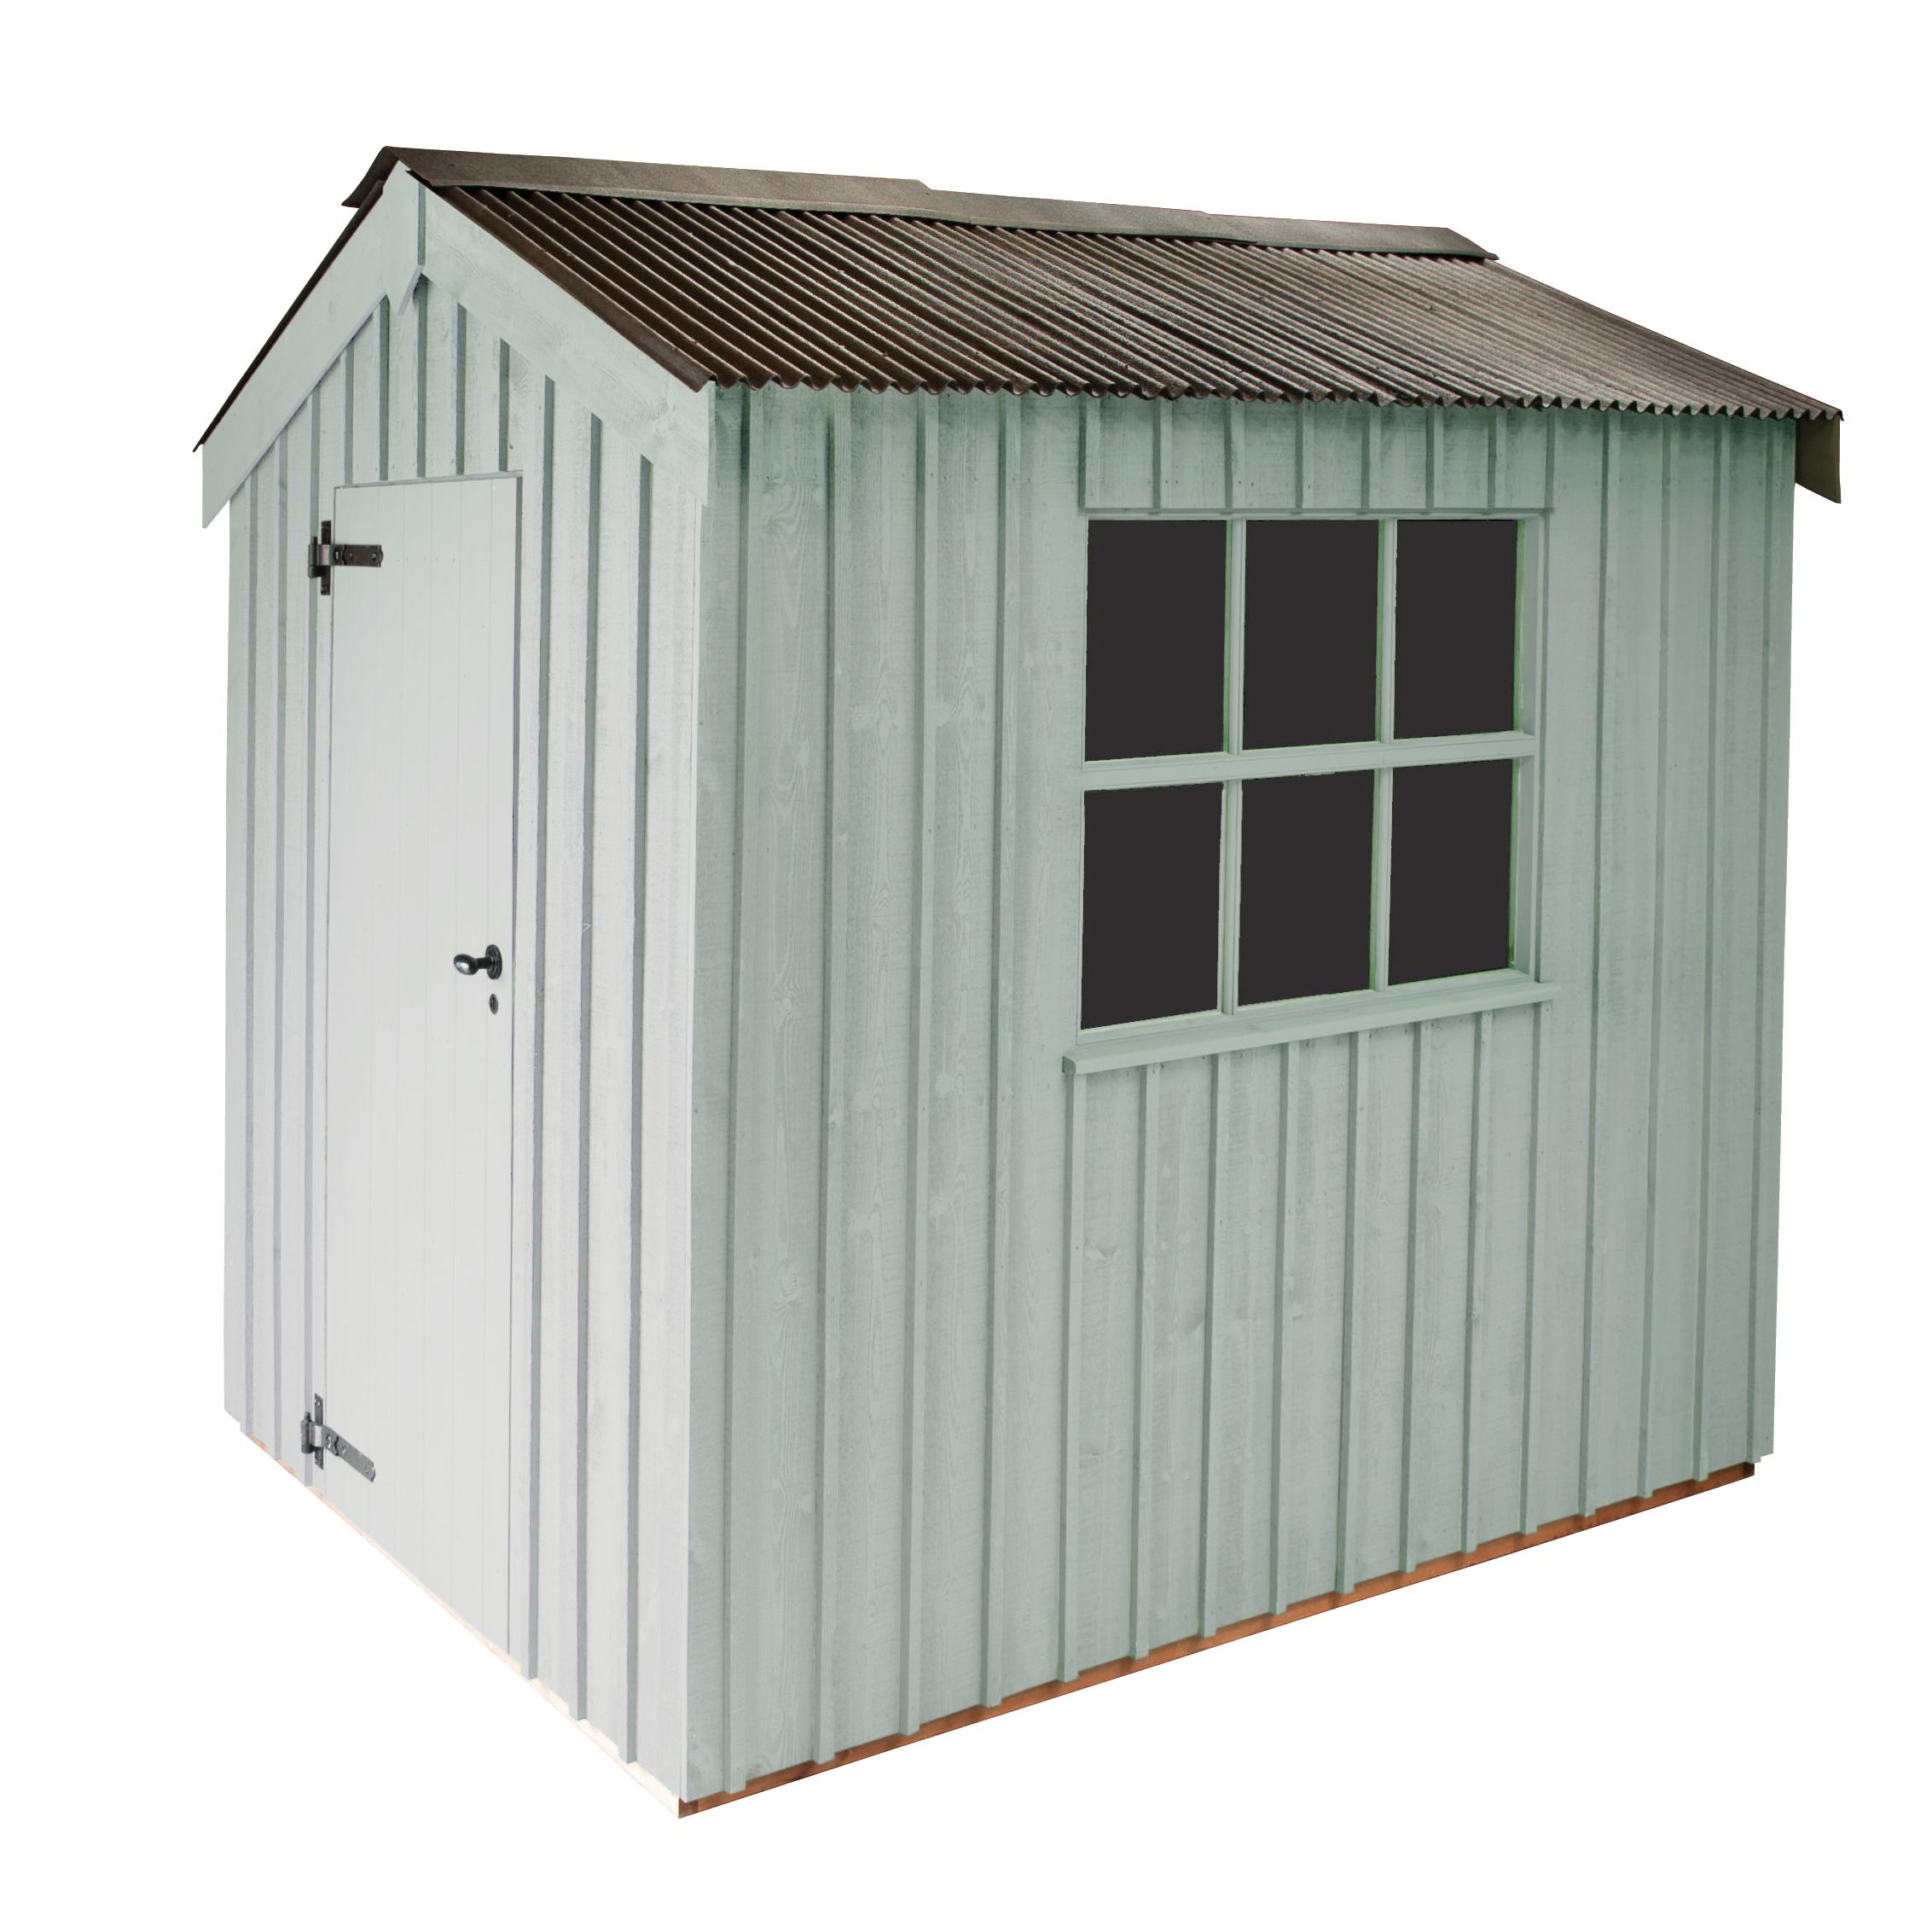 National Trust By Crane Peckover Fsc Garden Shed, 1.8x3m